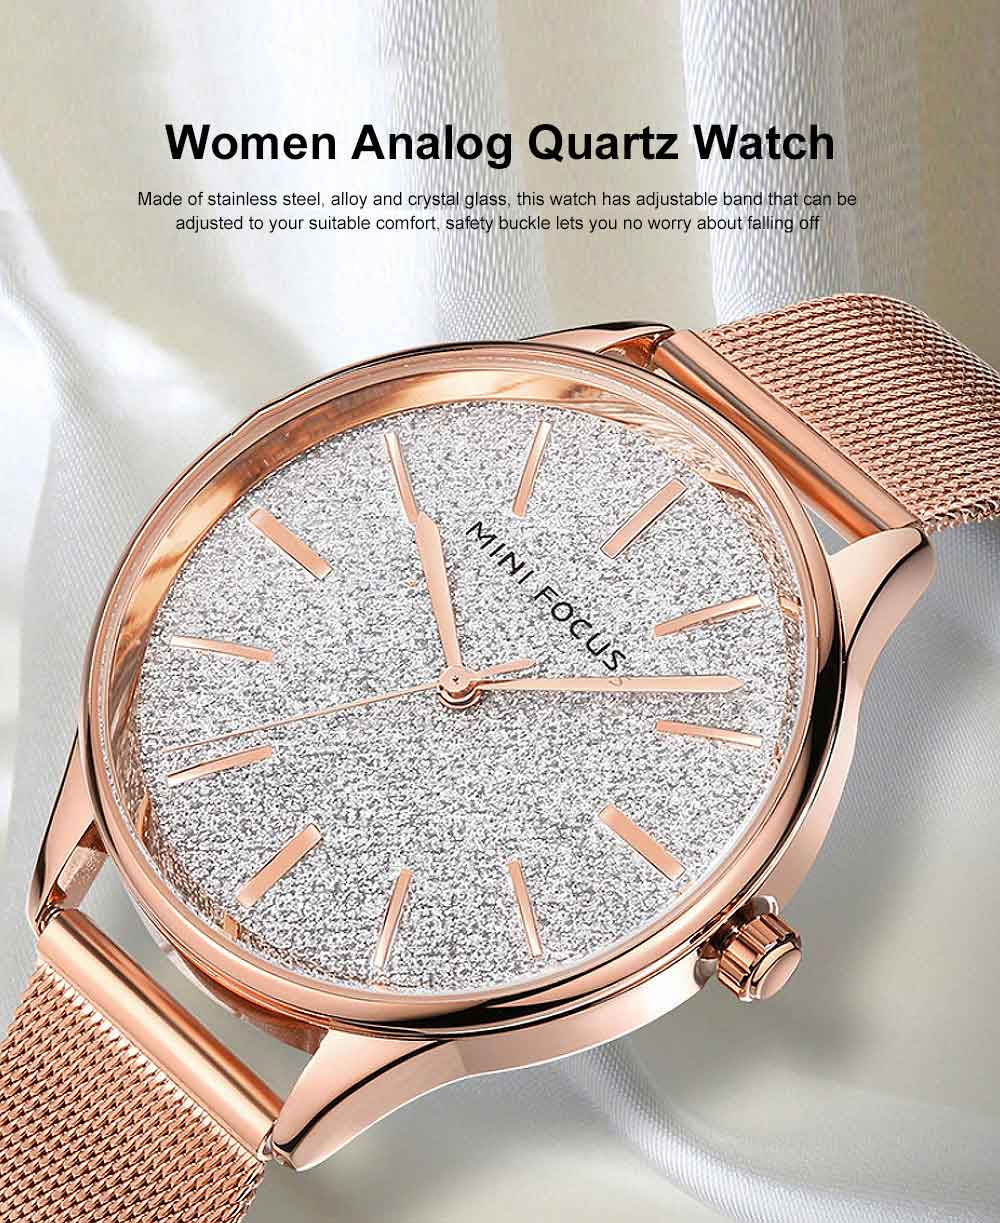 Japanese Women's Minimalist Ultra Thin Watch, Analog Quartz Stainless Steel Mesh Watch 0